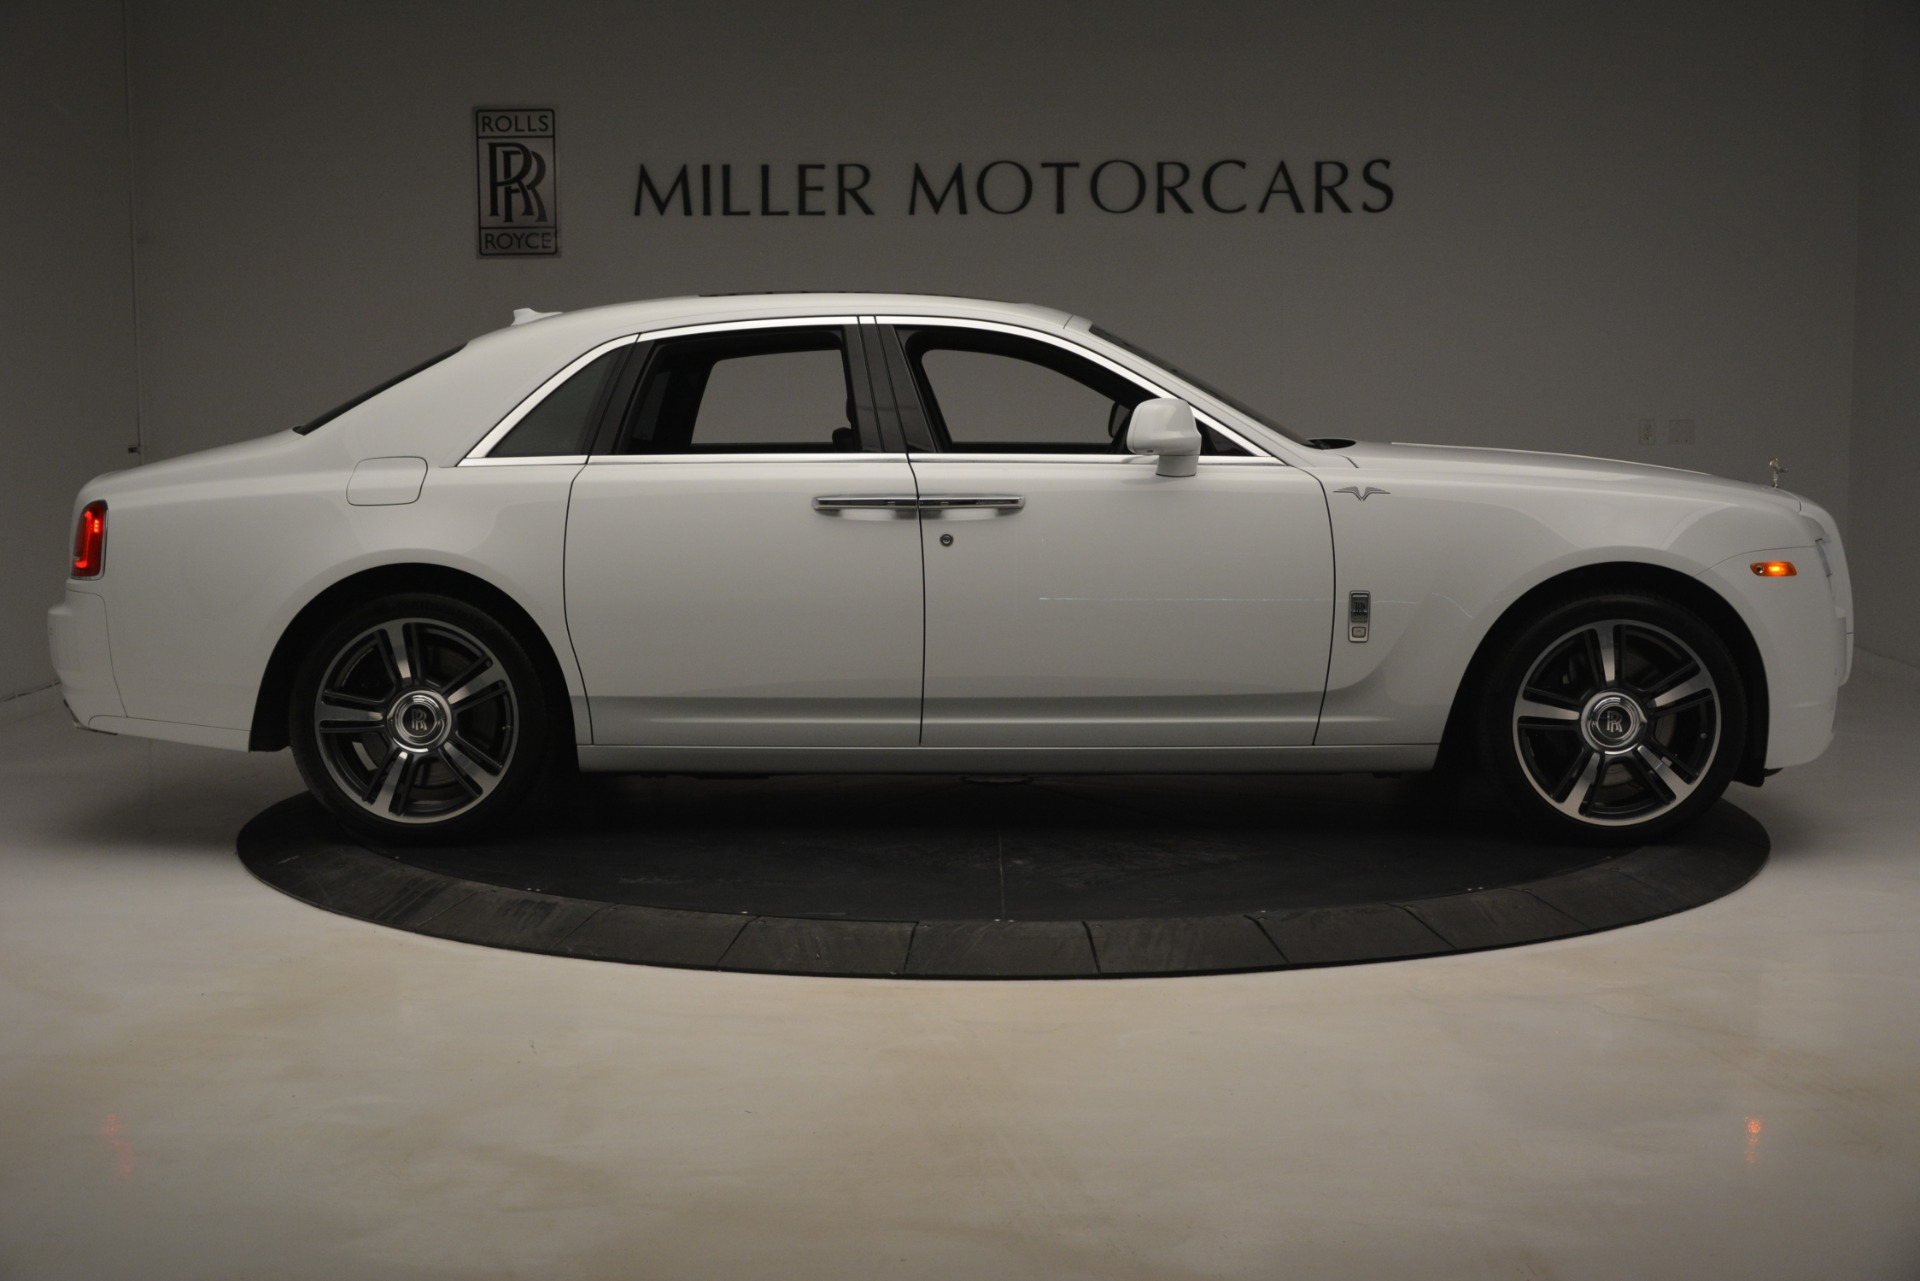 Used 2014 Rolls-Royce Ghost V-Spec For Sale In Greenwich, CT 2989_p11